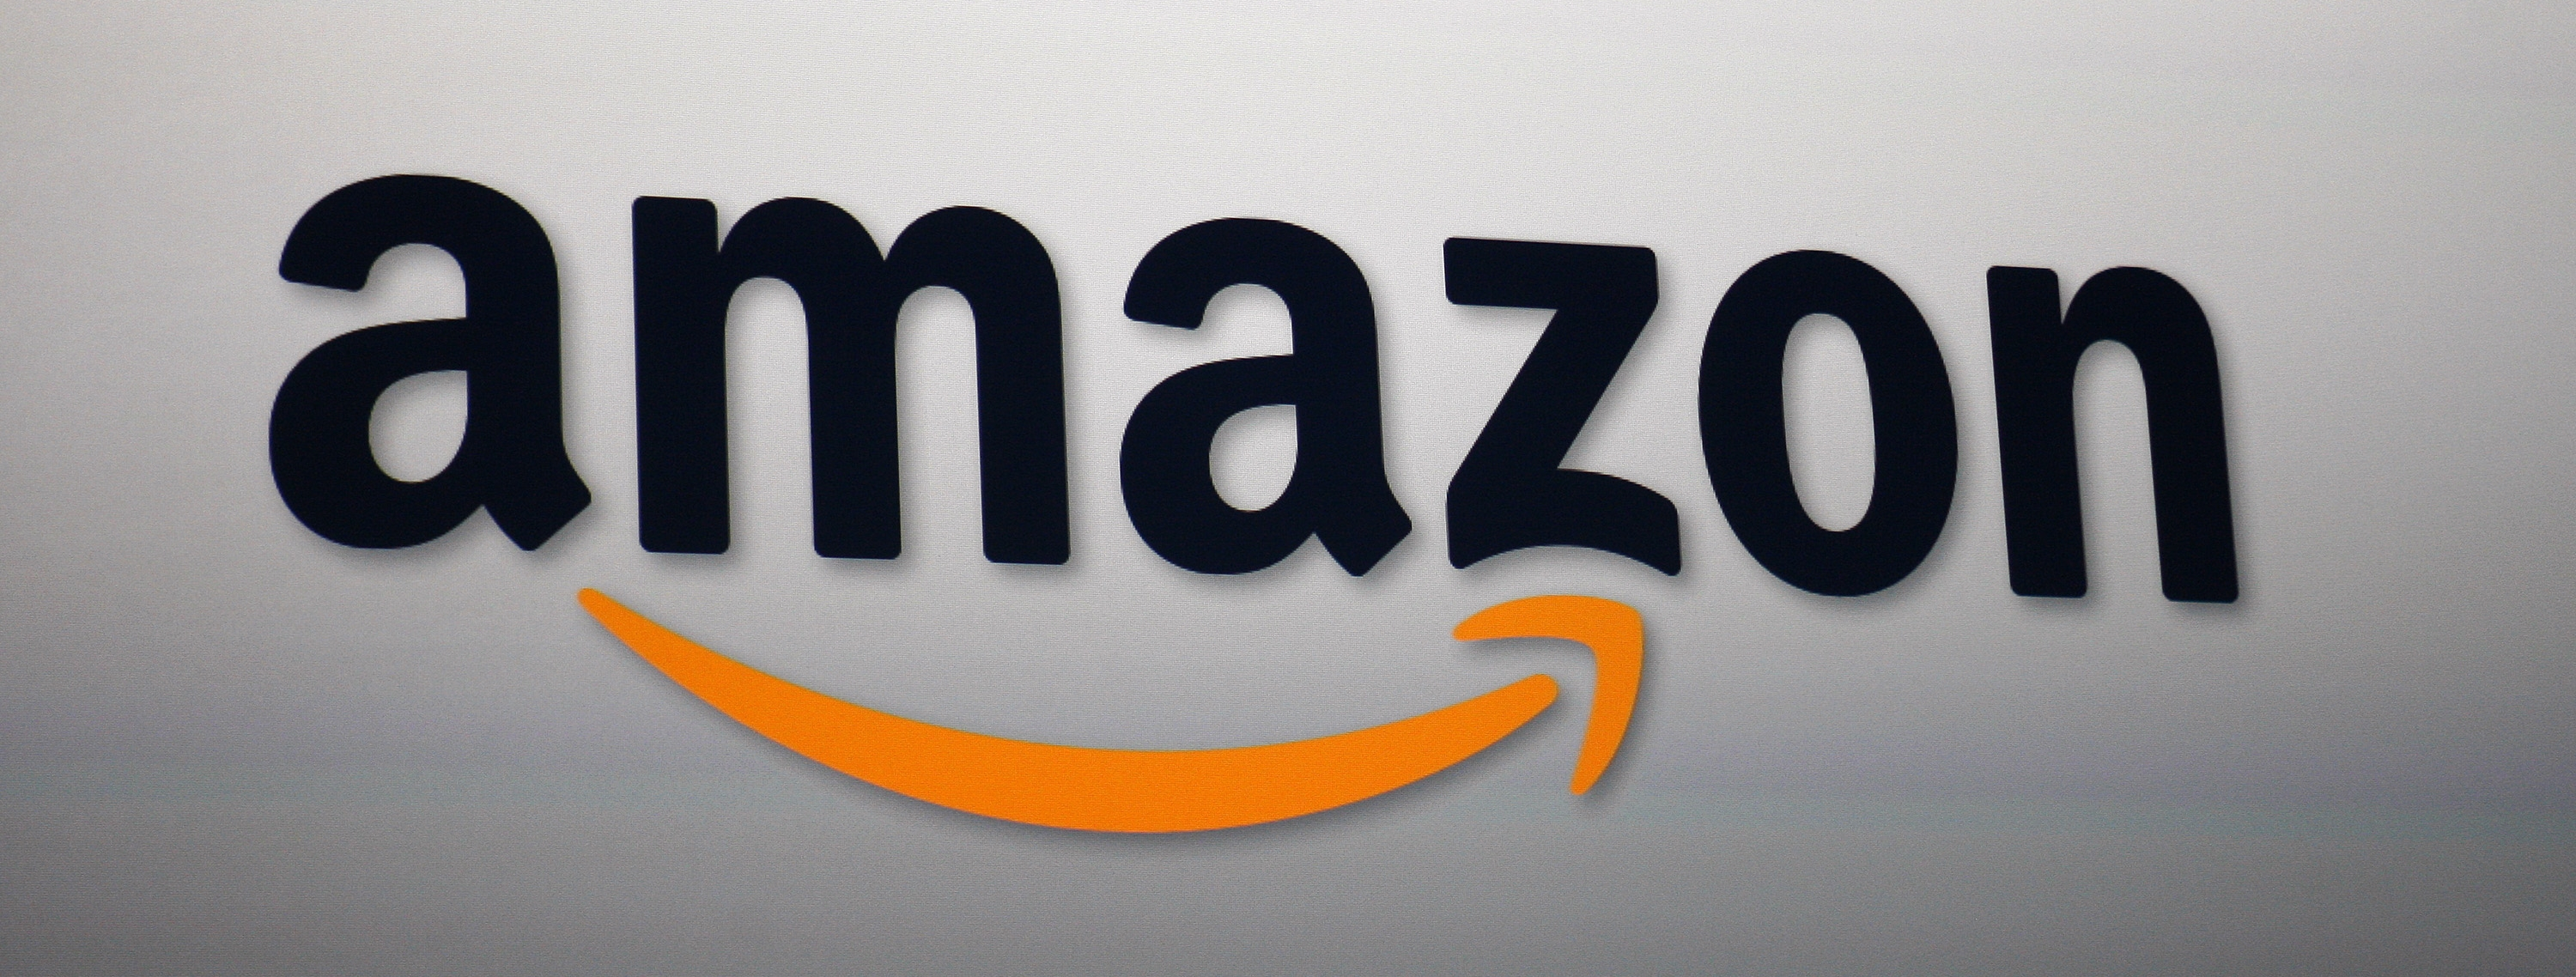 Amazon brings 'Login and Pay with Amazon' service for buying from ... - The Next Web